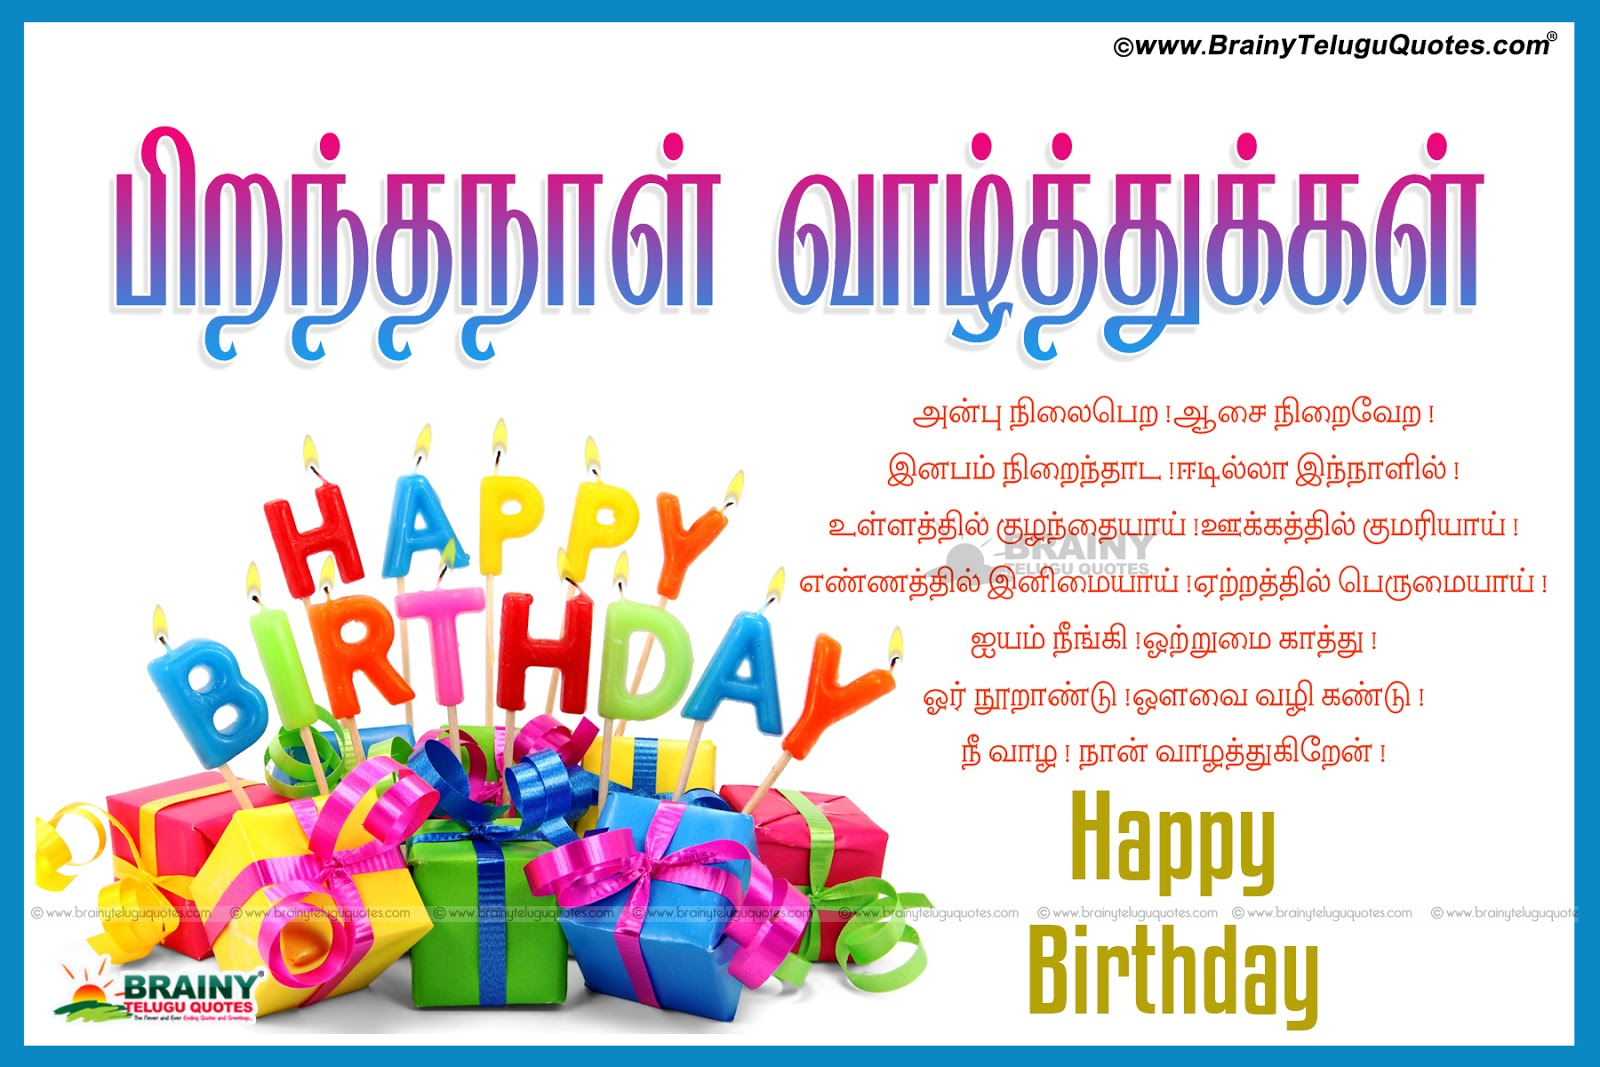 happy birthday wishes for friend message in tamil ; happy%252Bbithday%252Bgreeting%252Bquotes%252Bin%252BTamil-brainyTeluguquotes